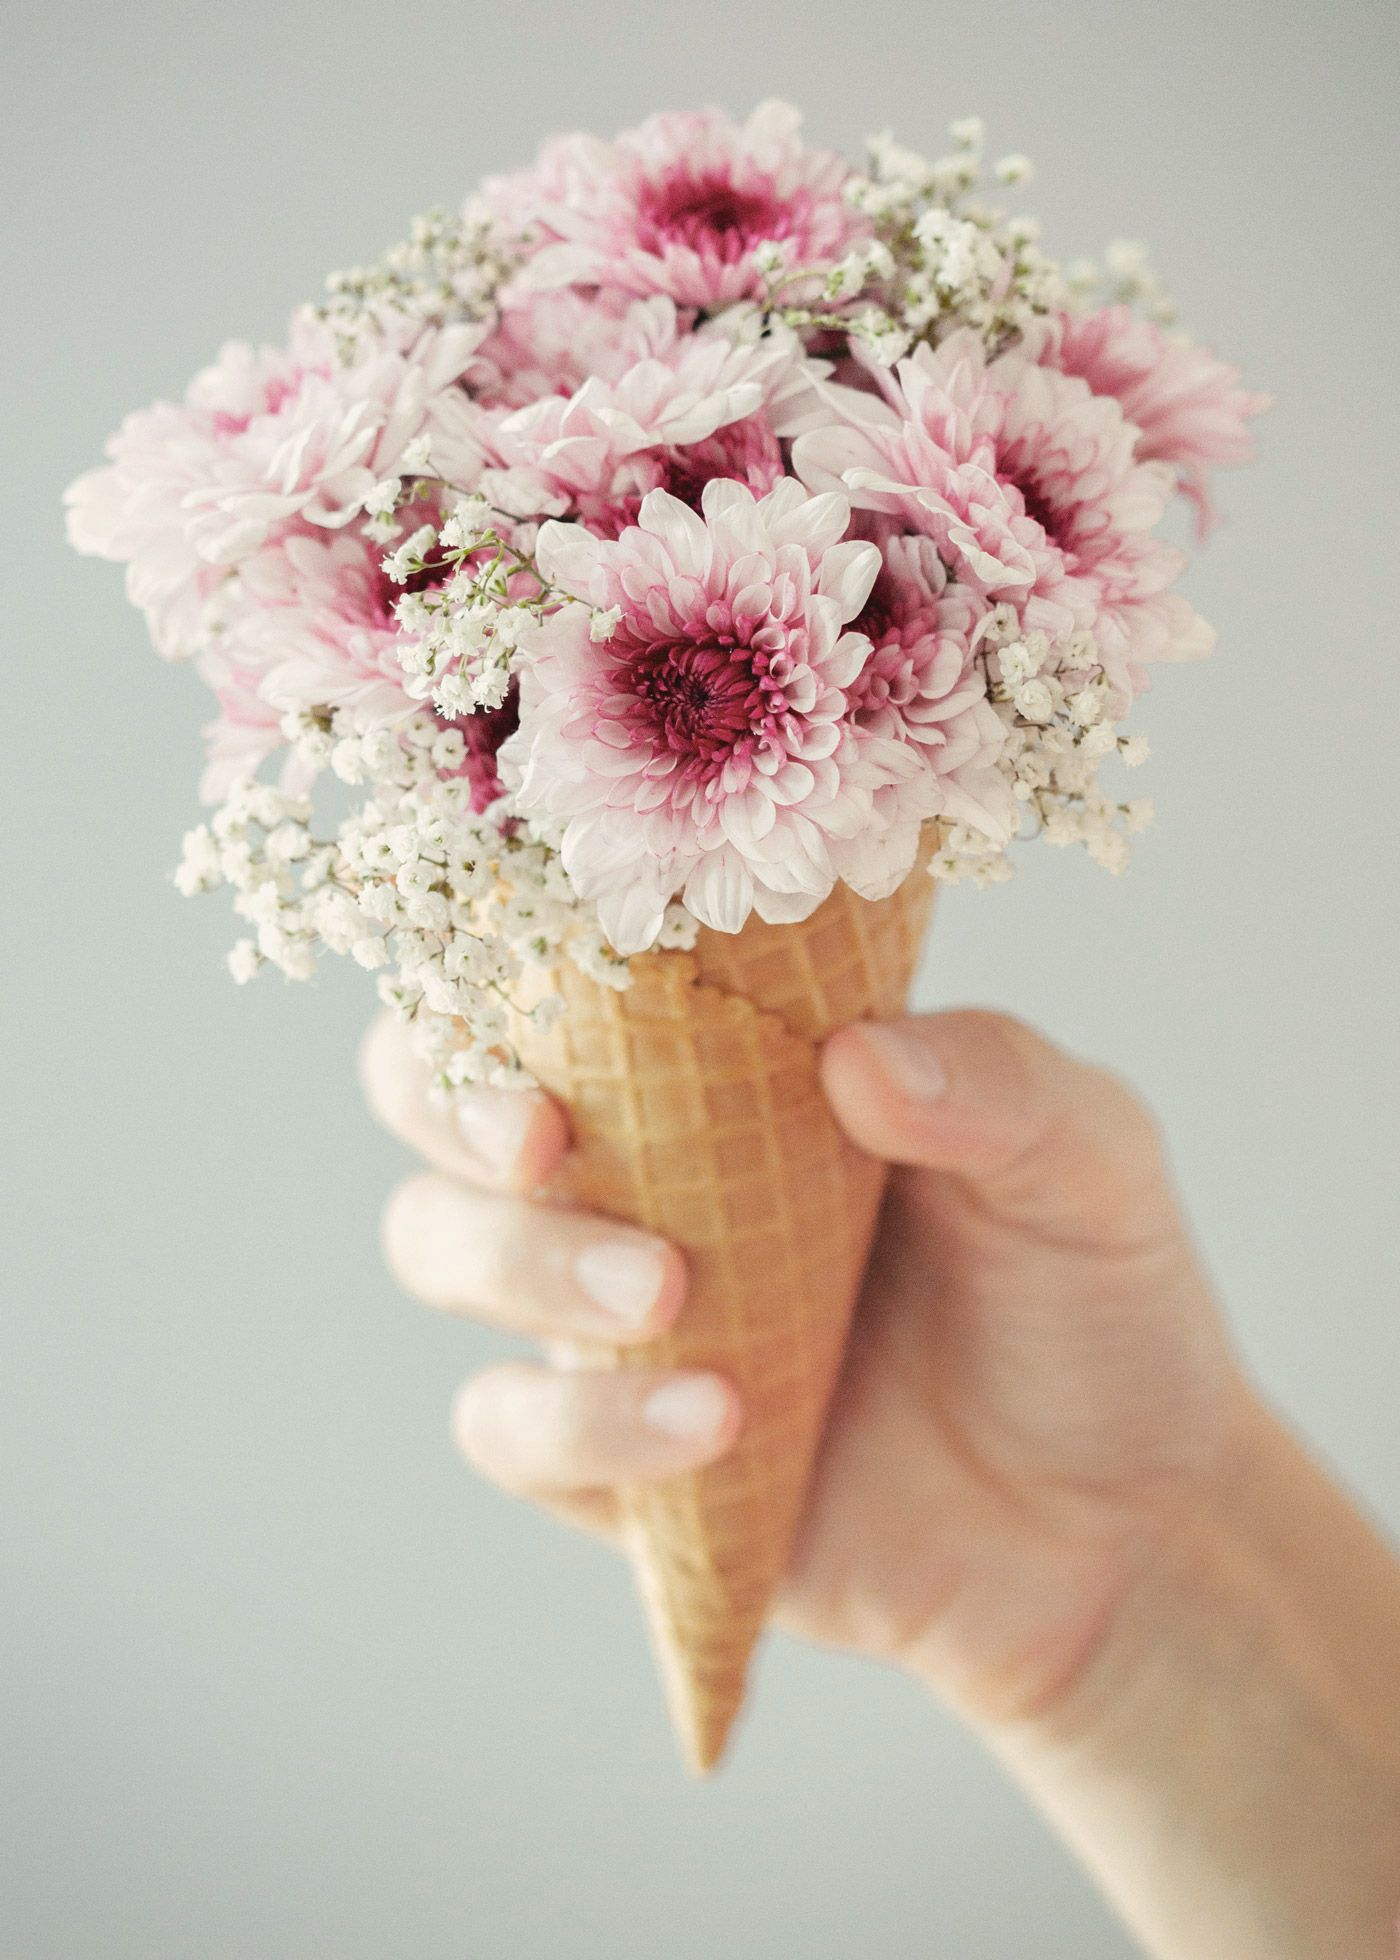 Rose Gold Wallpaper With Quotes Aesthetics Tumblr White Flowers Pictures To Pin On